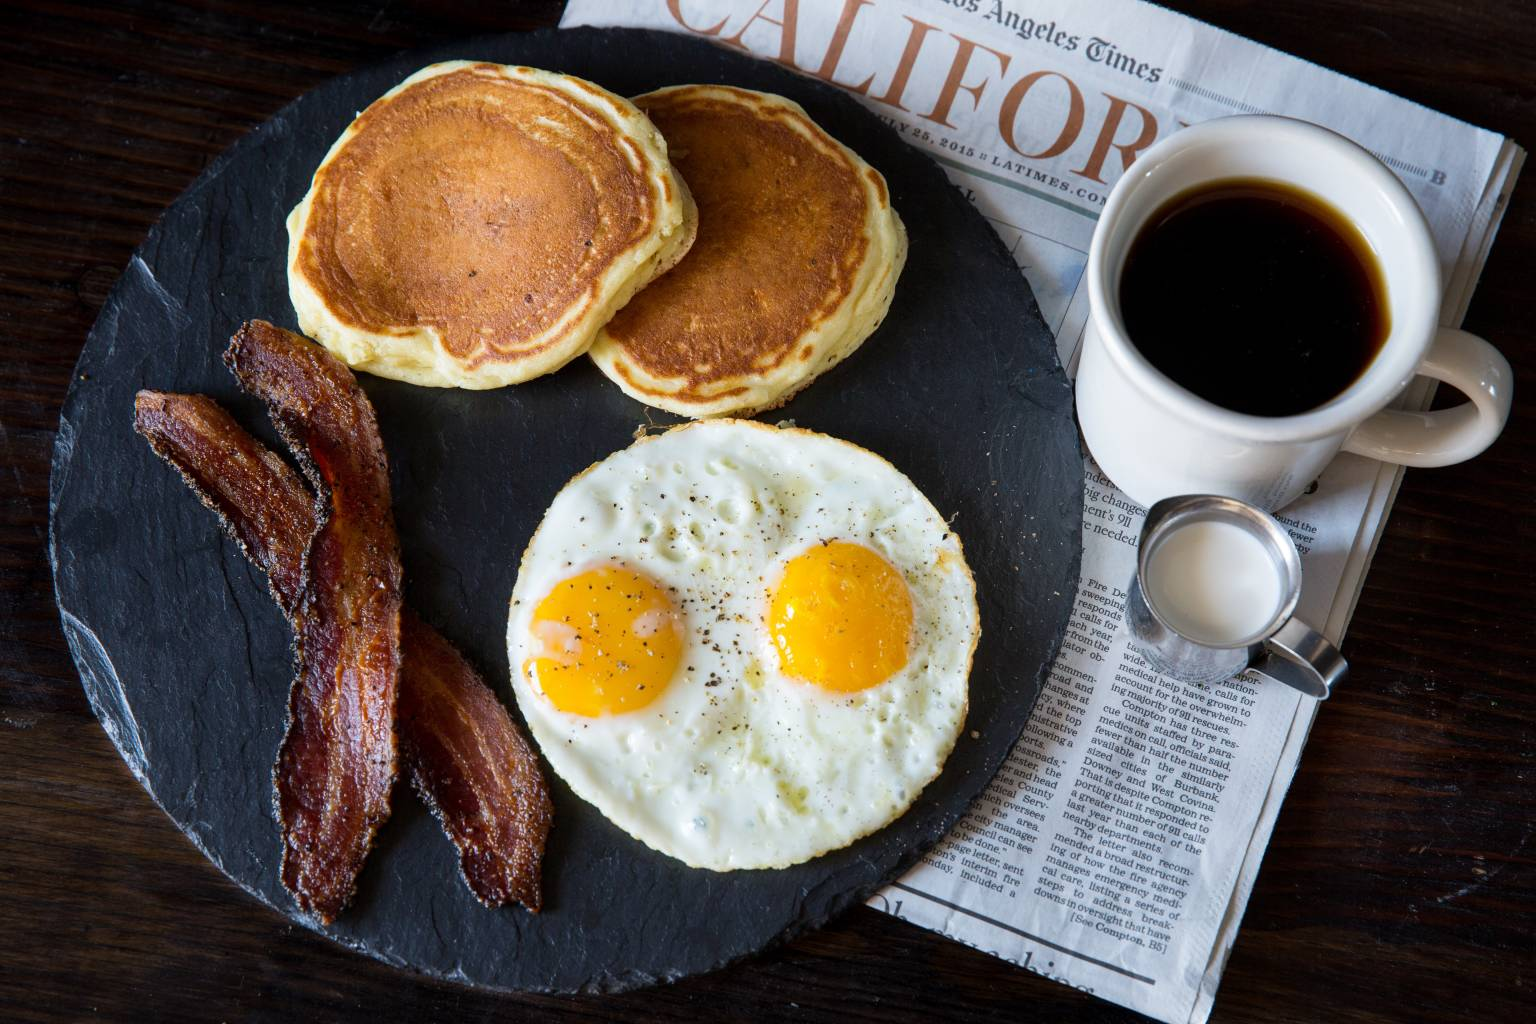 Enjoy your morning newspaper and coffee with eggs, bacon and pancakes.